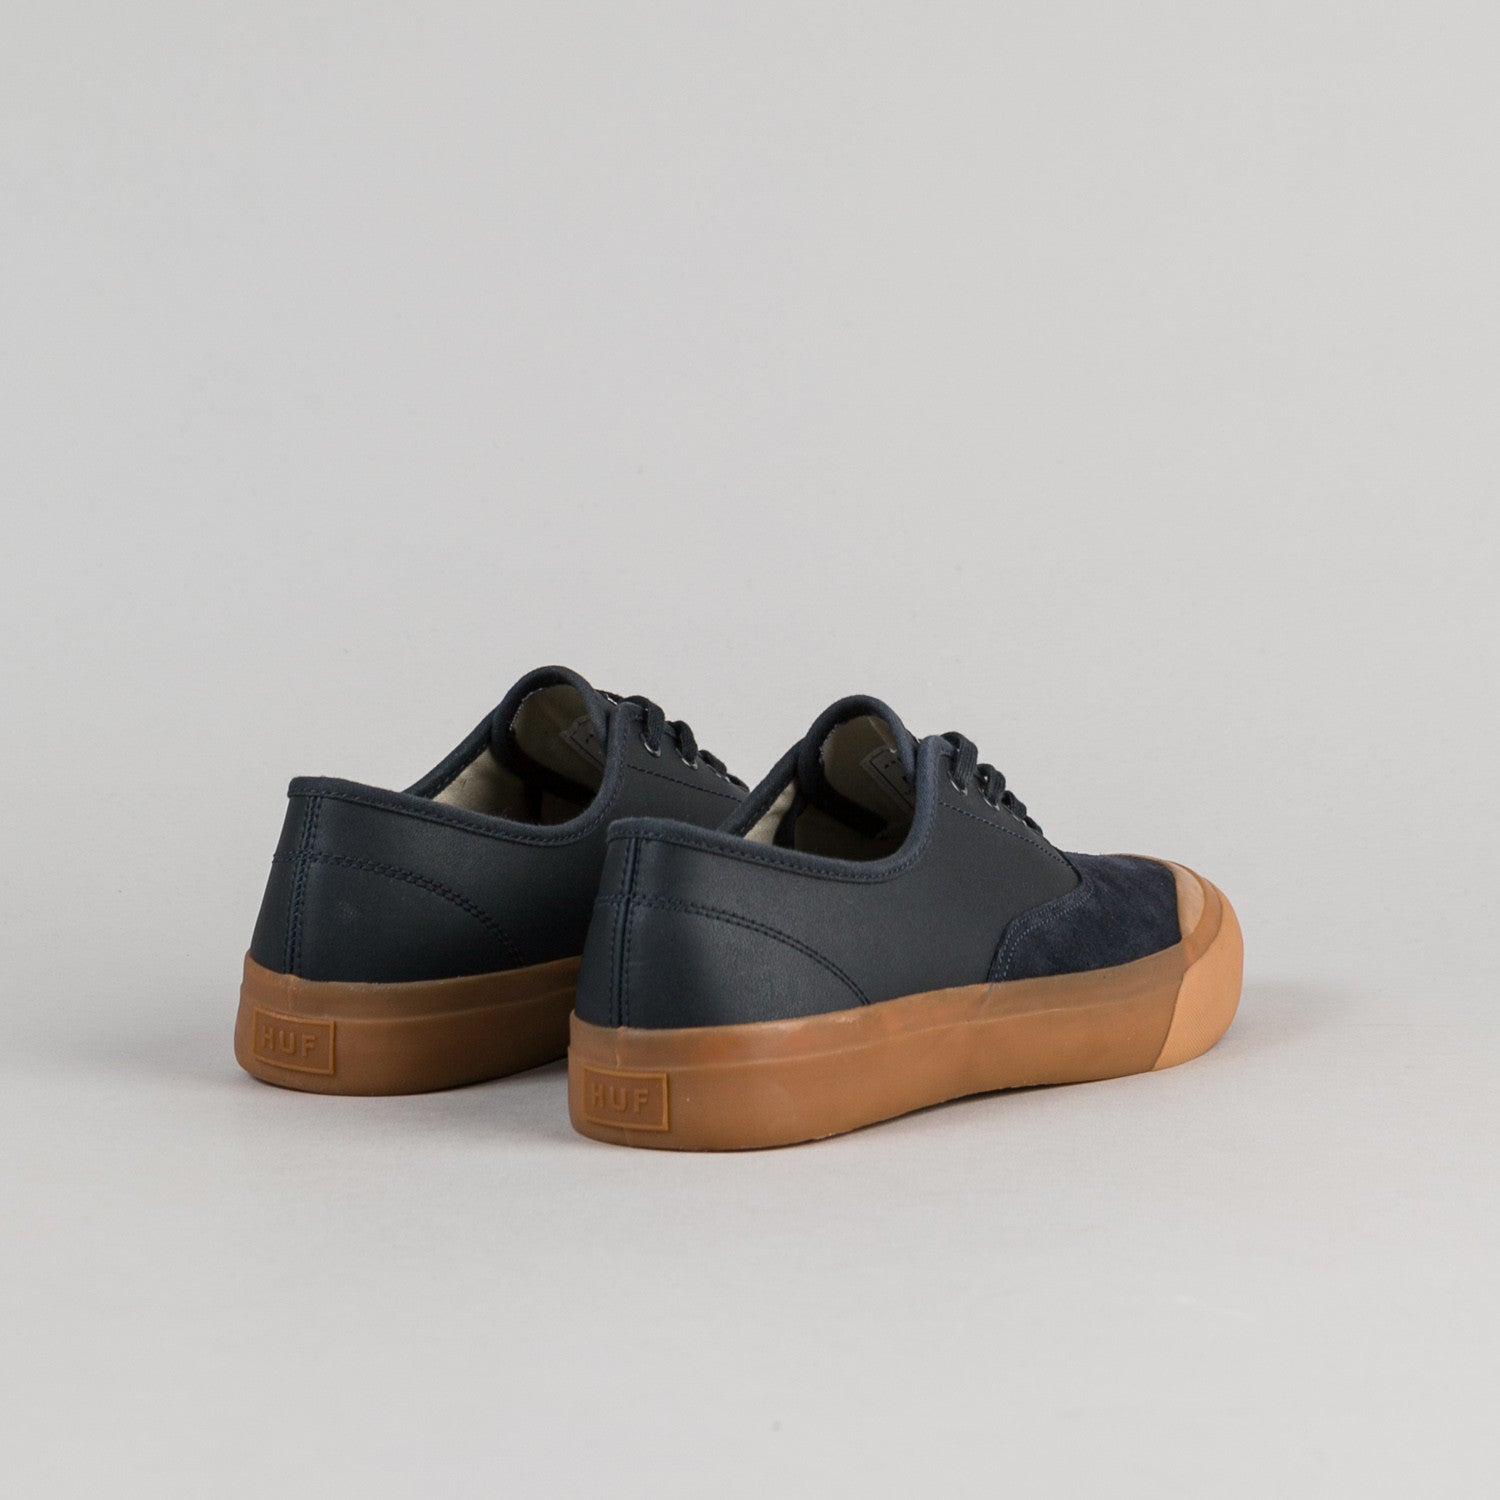 HUF Cromer Shoes - Navy / Gum